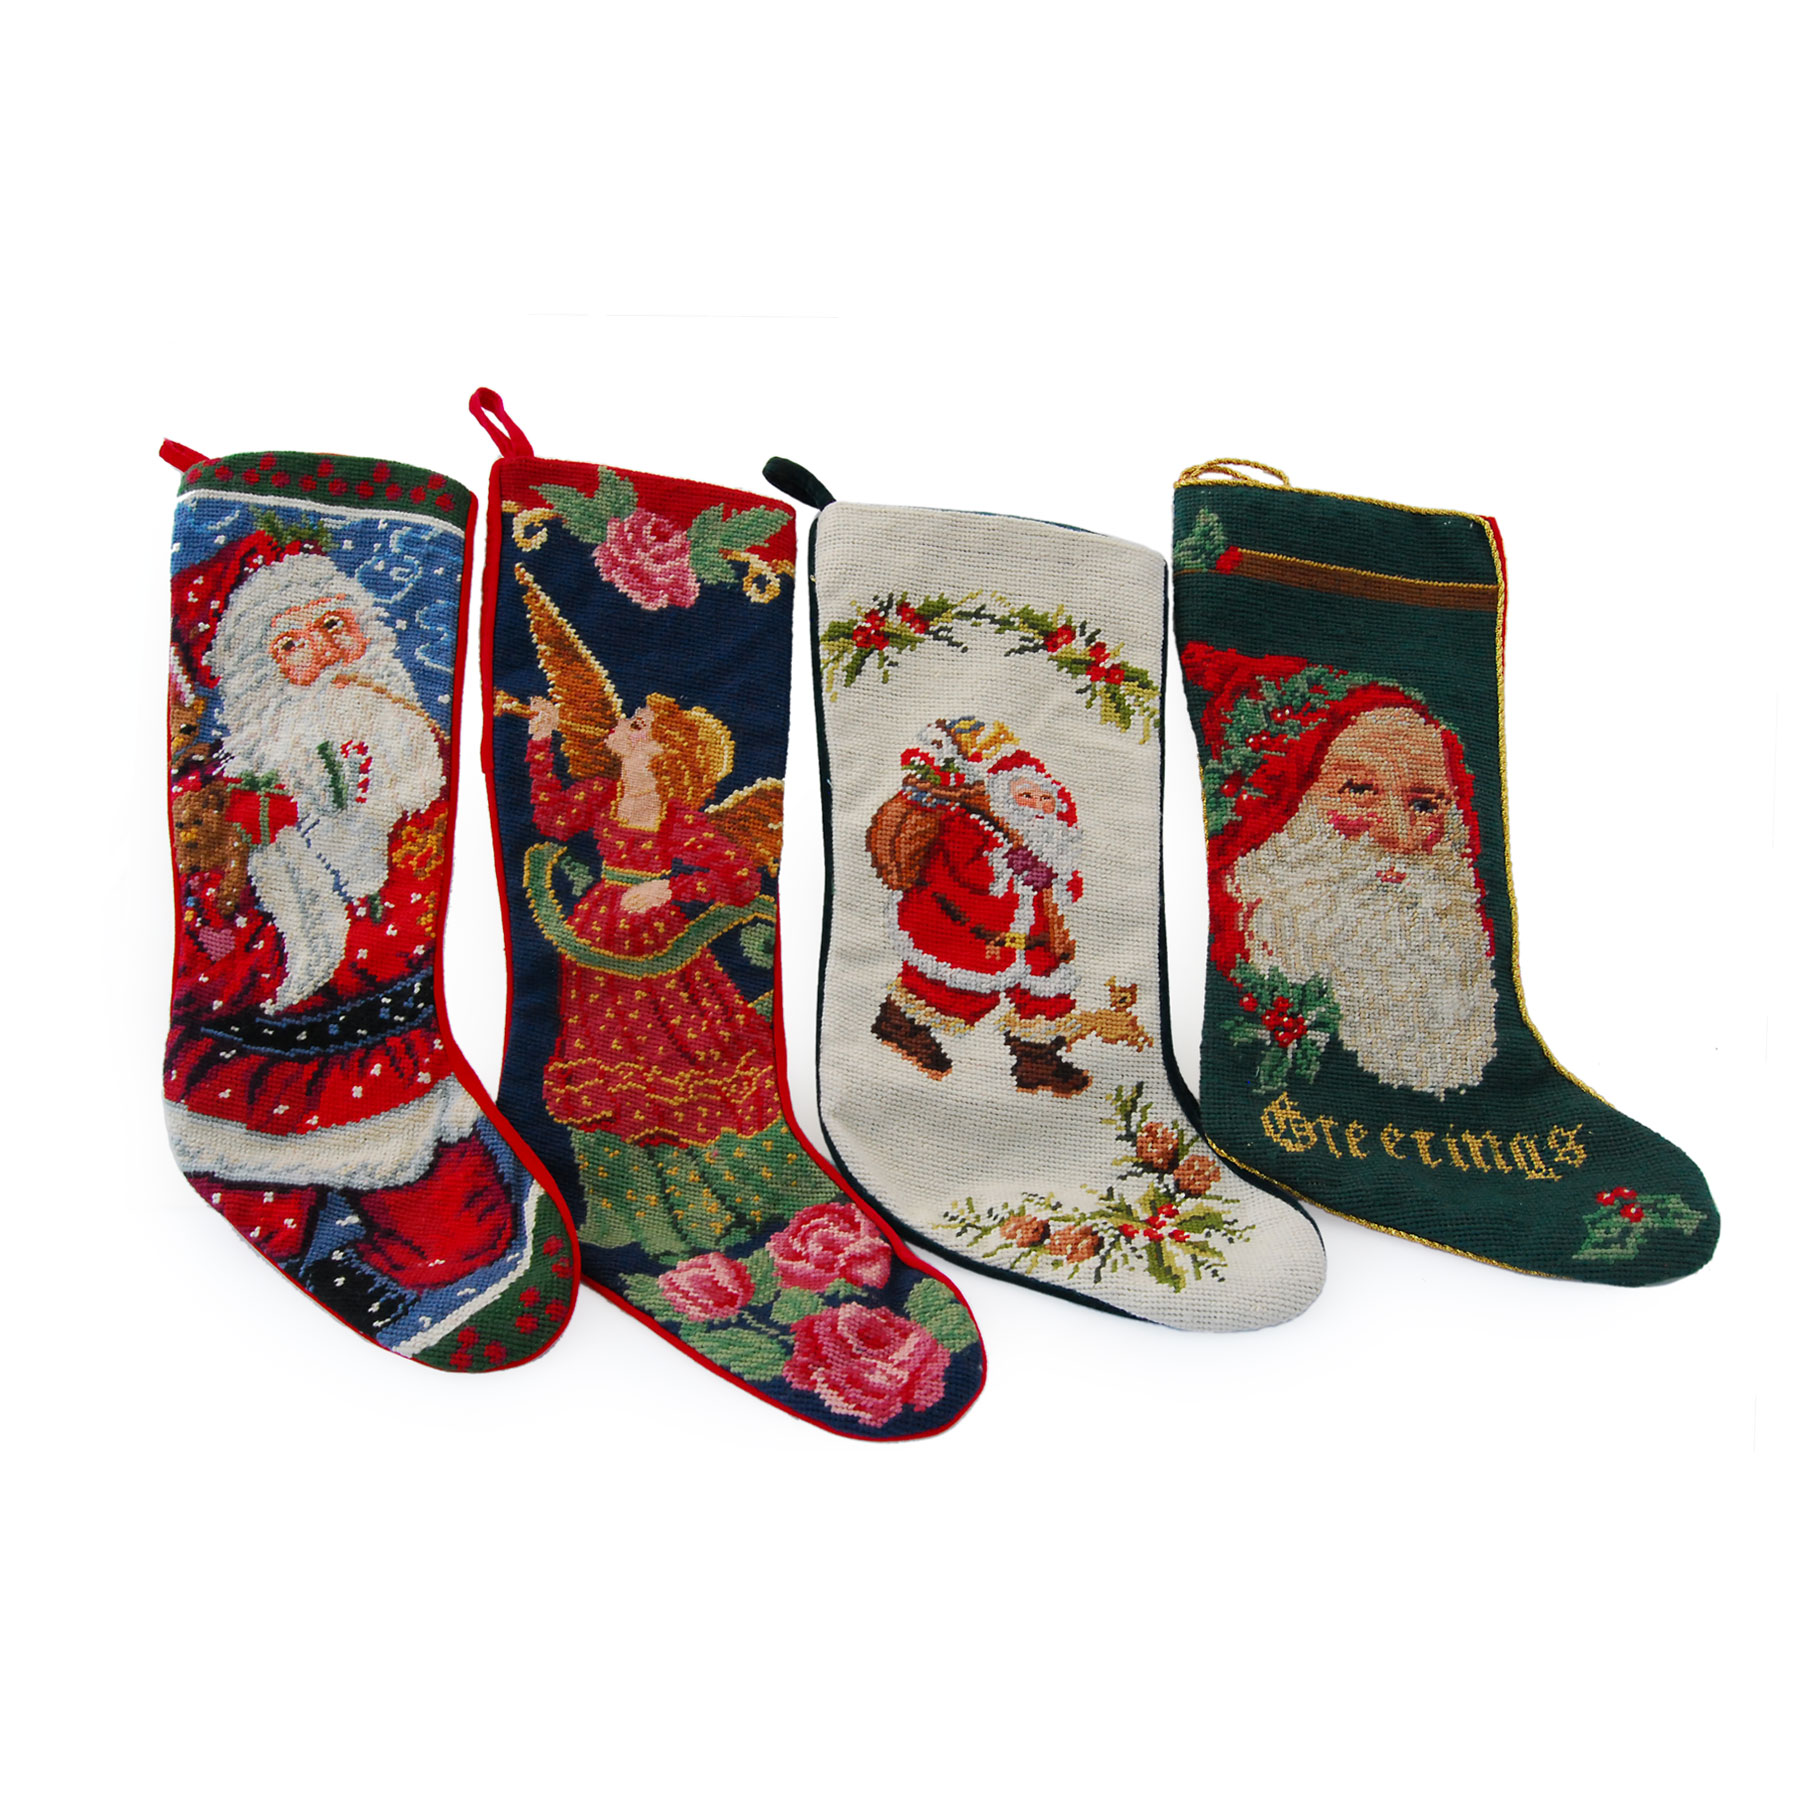 Alluring Needlepoint Stockings for Home Accecories Ideas: Brilliant Needlepoint Stockings And Fireplace With Mantle Shelves In The Christmas Day